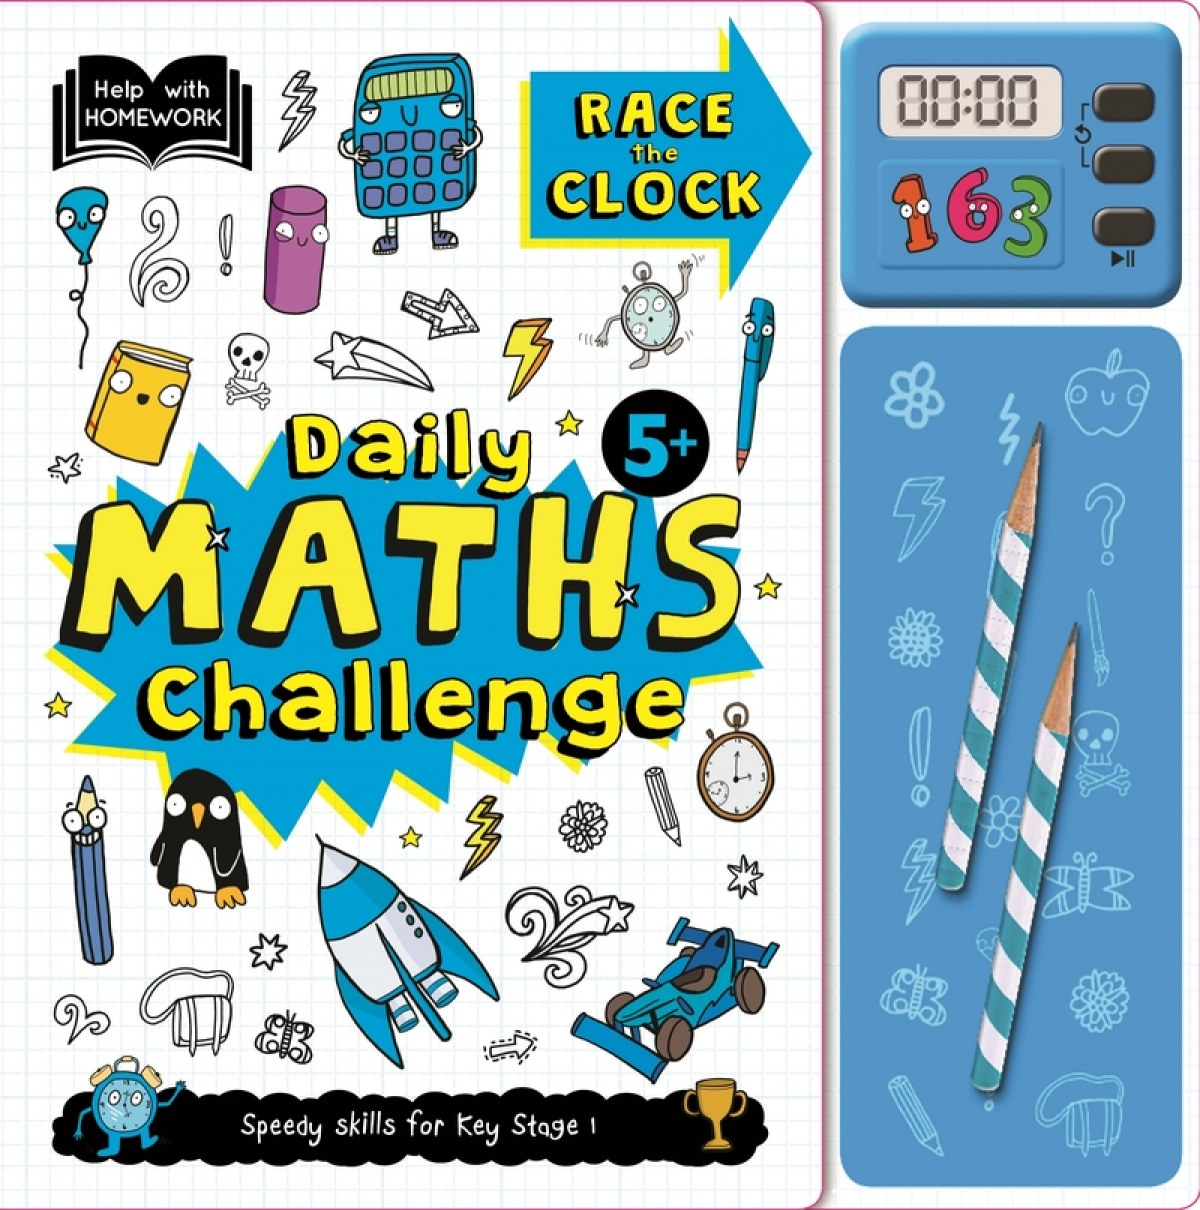 DAILY MATHS CHALLENGE - ING